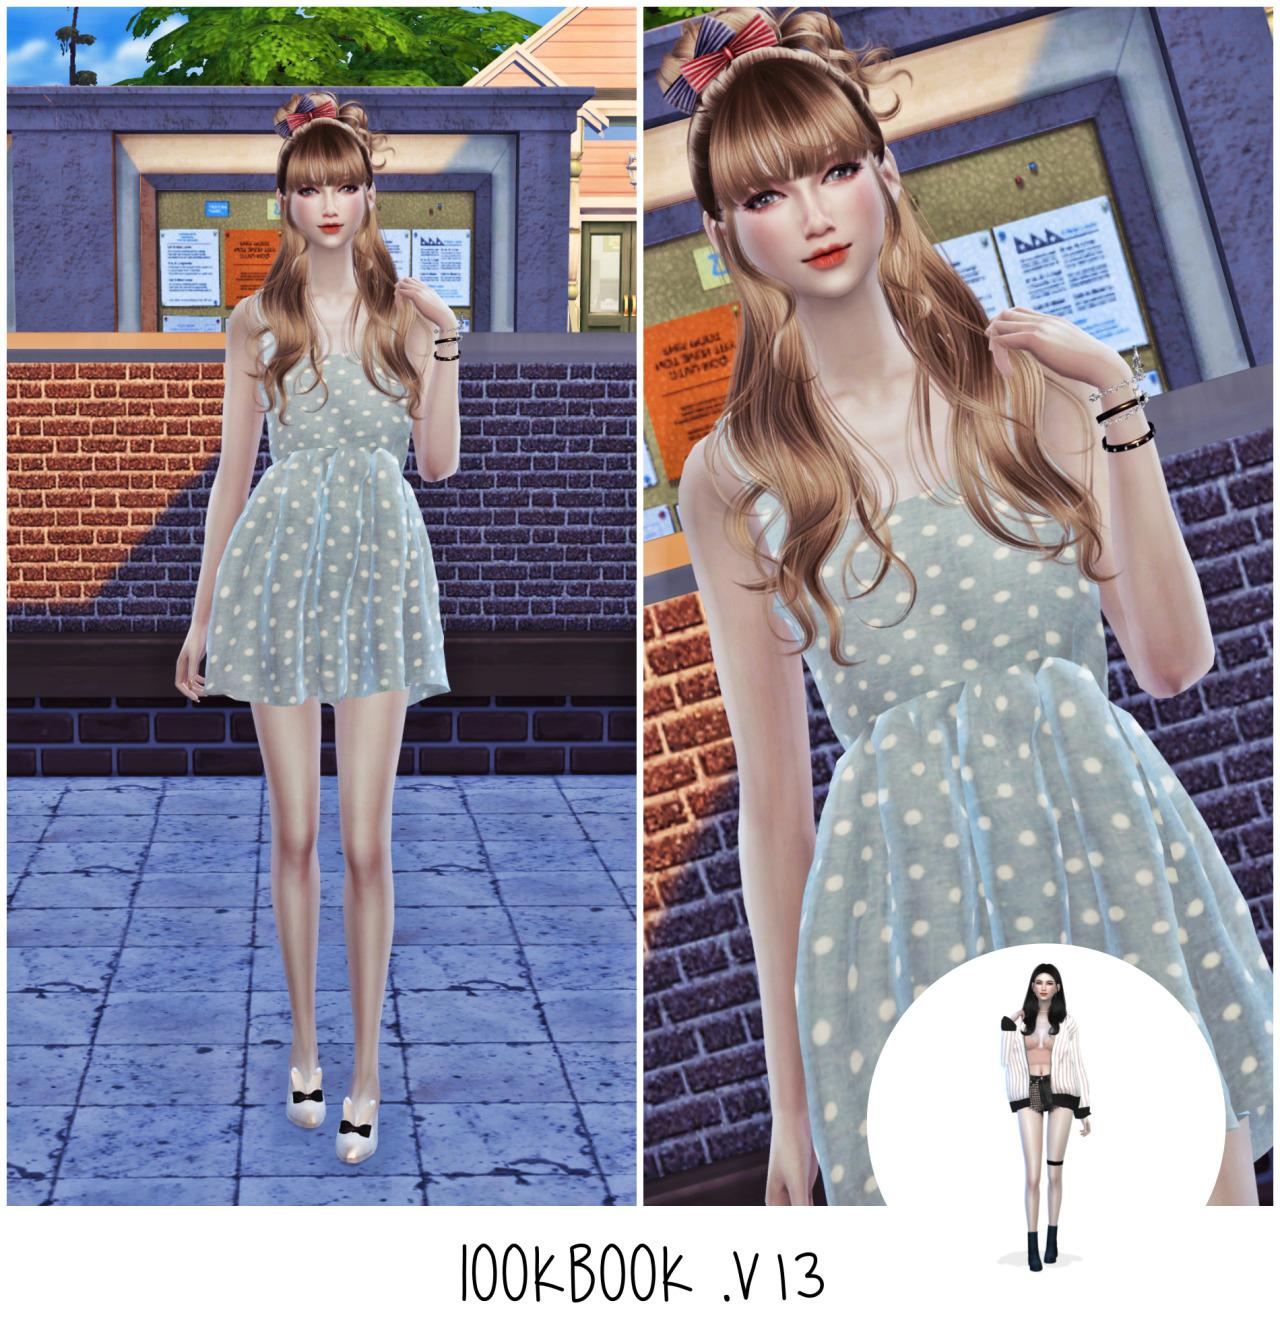 LOOKBOOK V.13 by flowerchamber